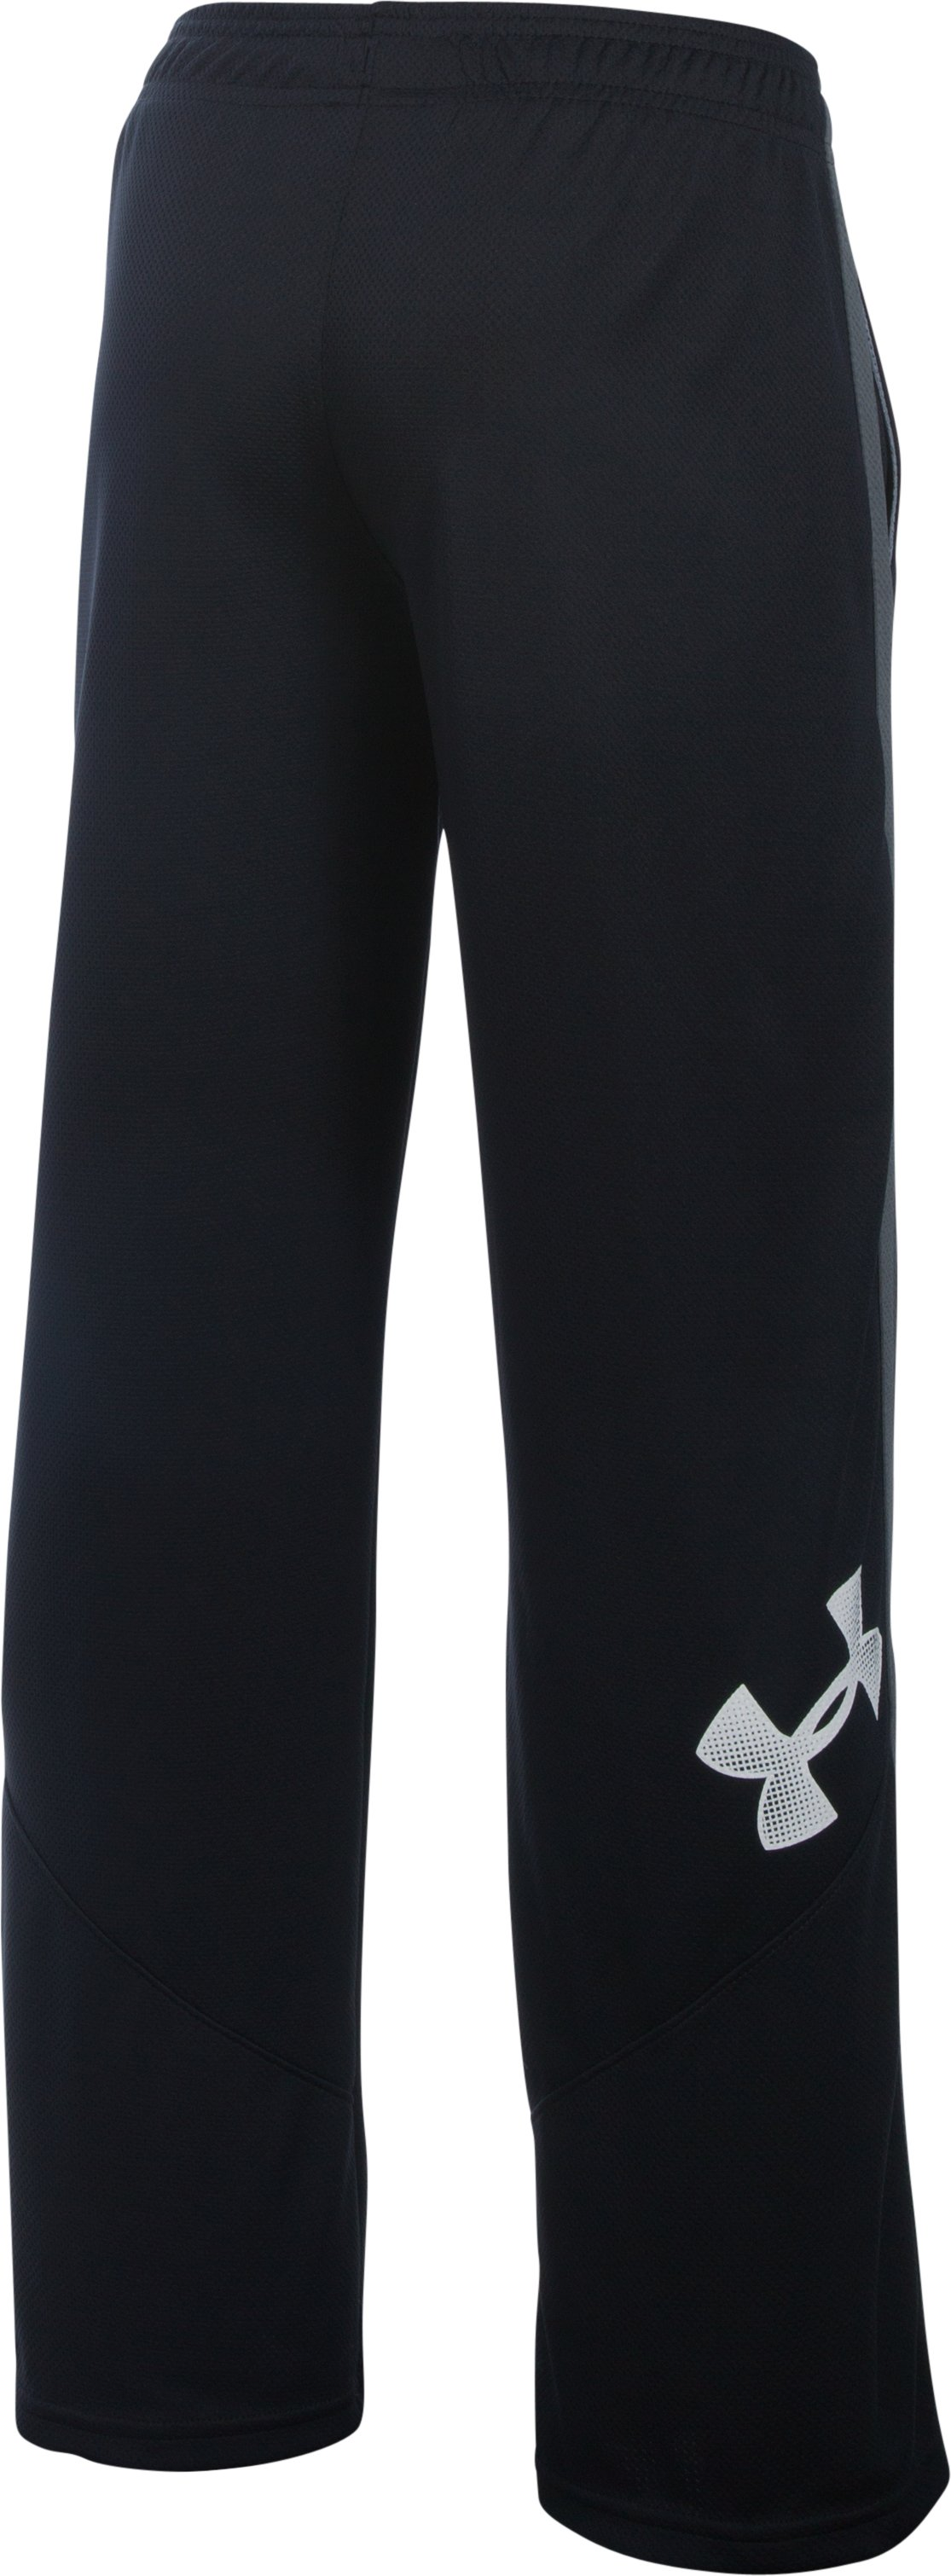 Boys' UA Champ Warm-Up Pants, Black ,